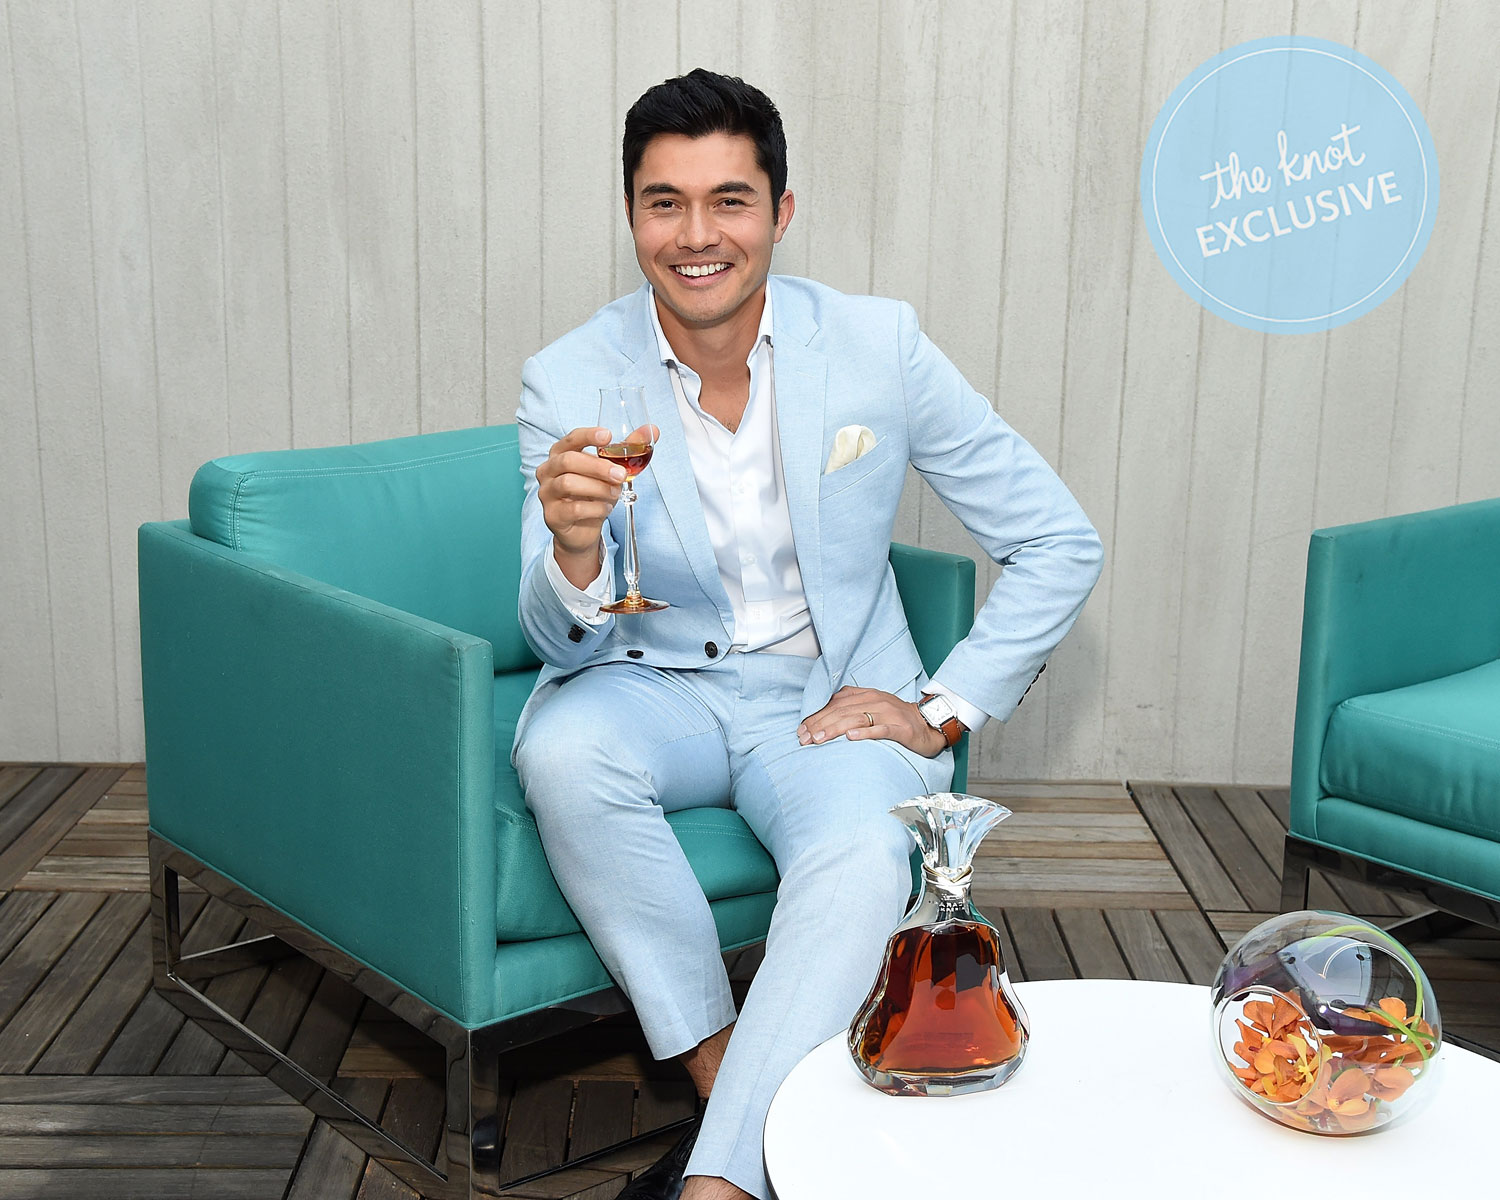 Exclusive: Crazy Rich Asians' Henry Golding On His Own